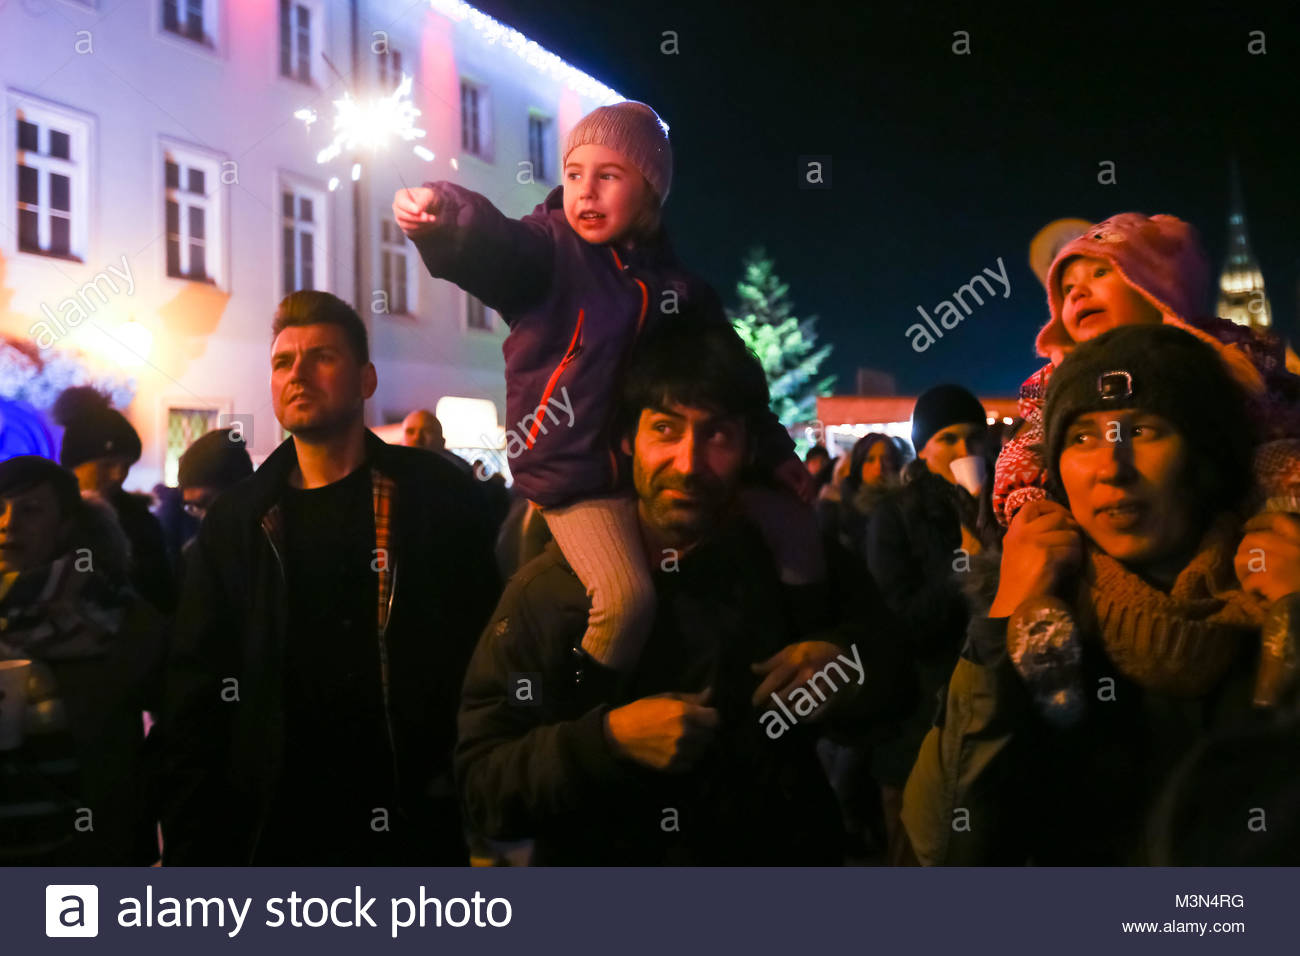 ZAGREB,CROATIA - DECEMBER 1, 2016: Parents with children in the audience at the famous croatian rock band Vatra Stock Photo